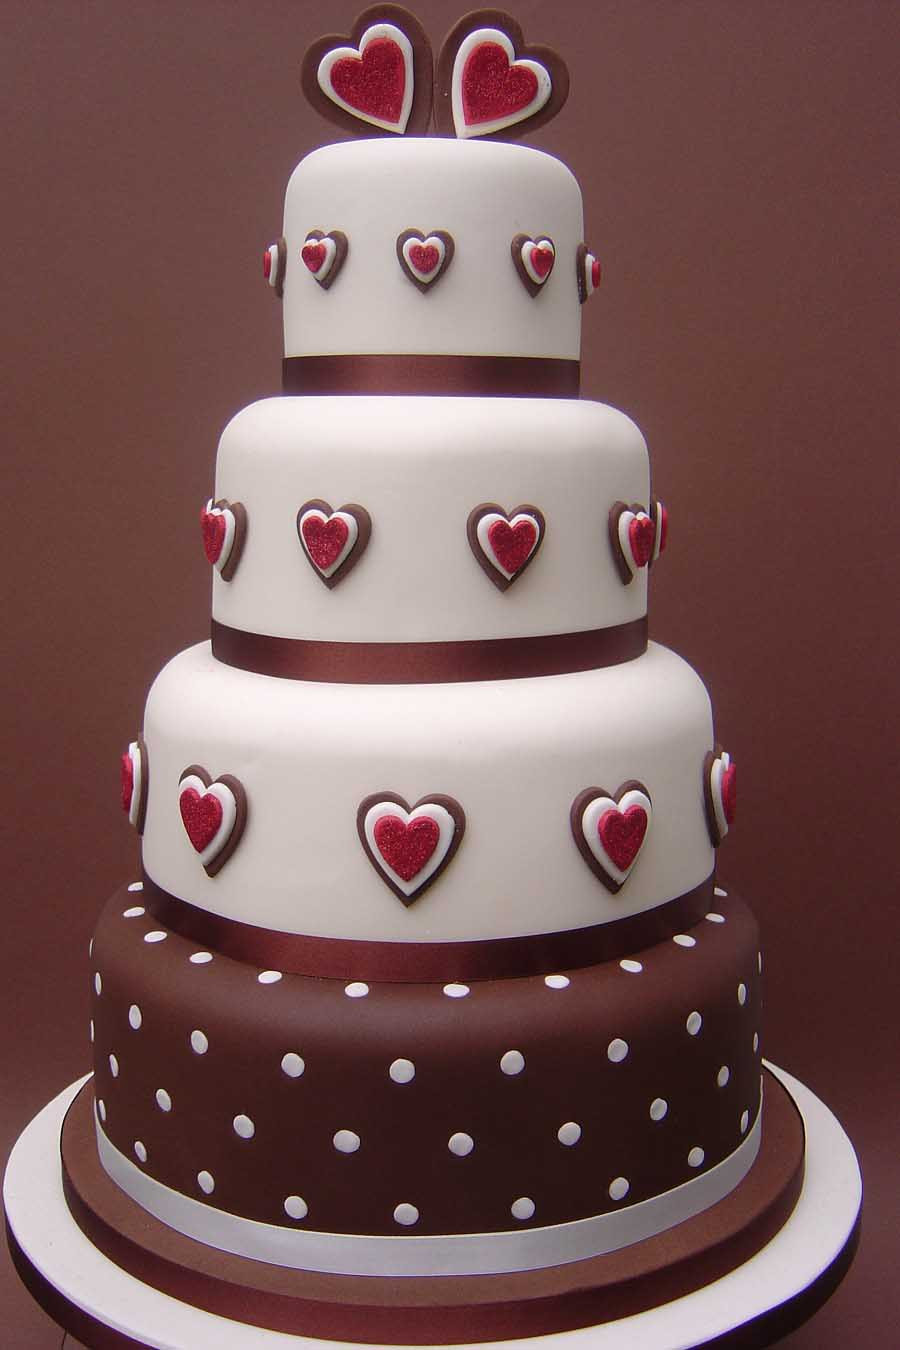 Wedding Cakes Styles  Latest Wedding Cake Designs Starsricha